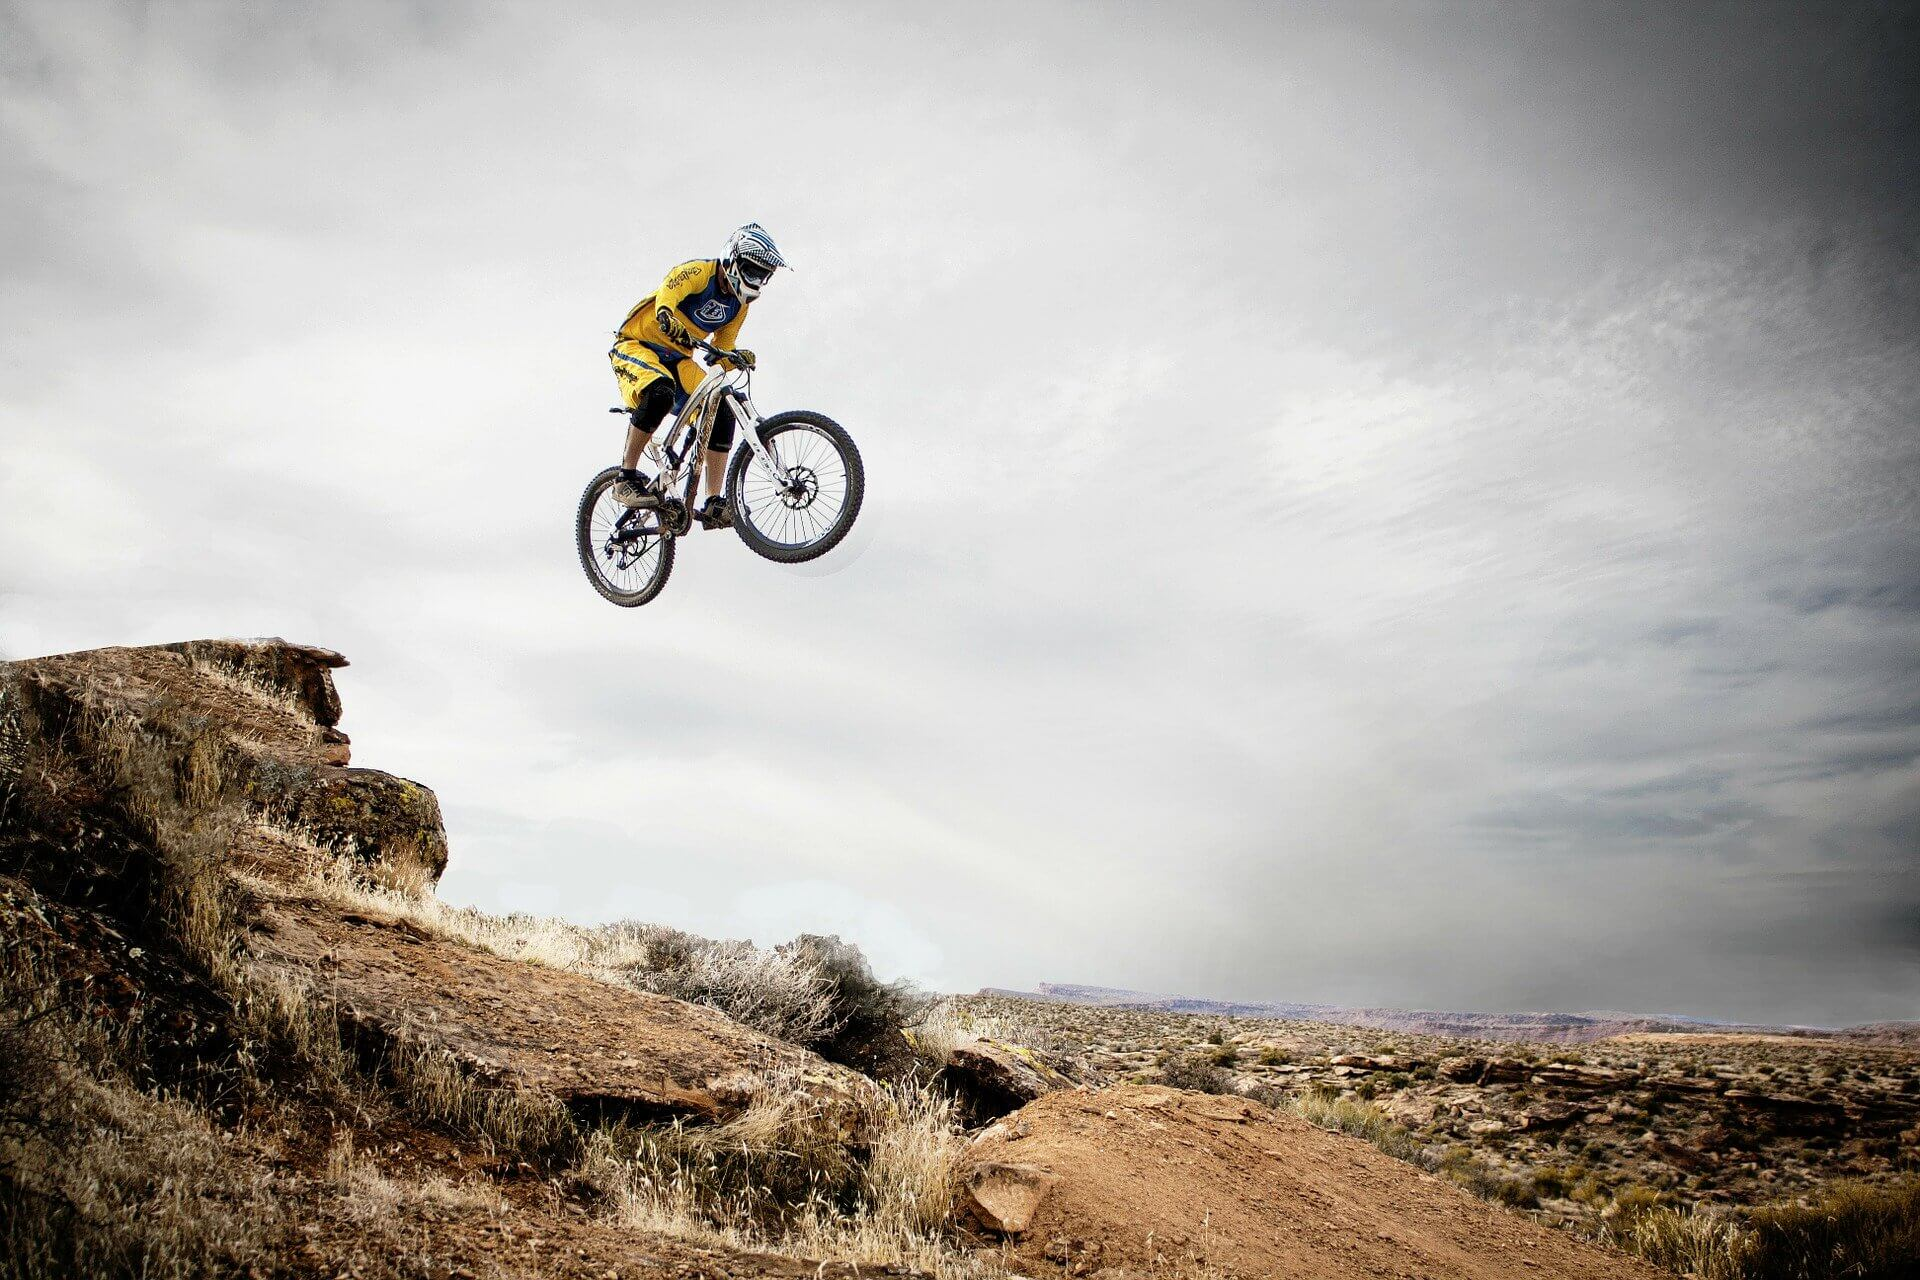 A man jumping with a bike in the air